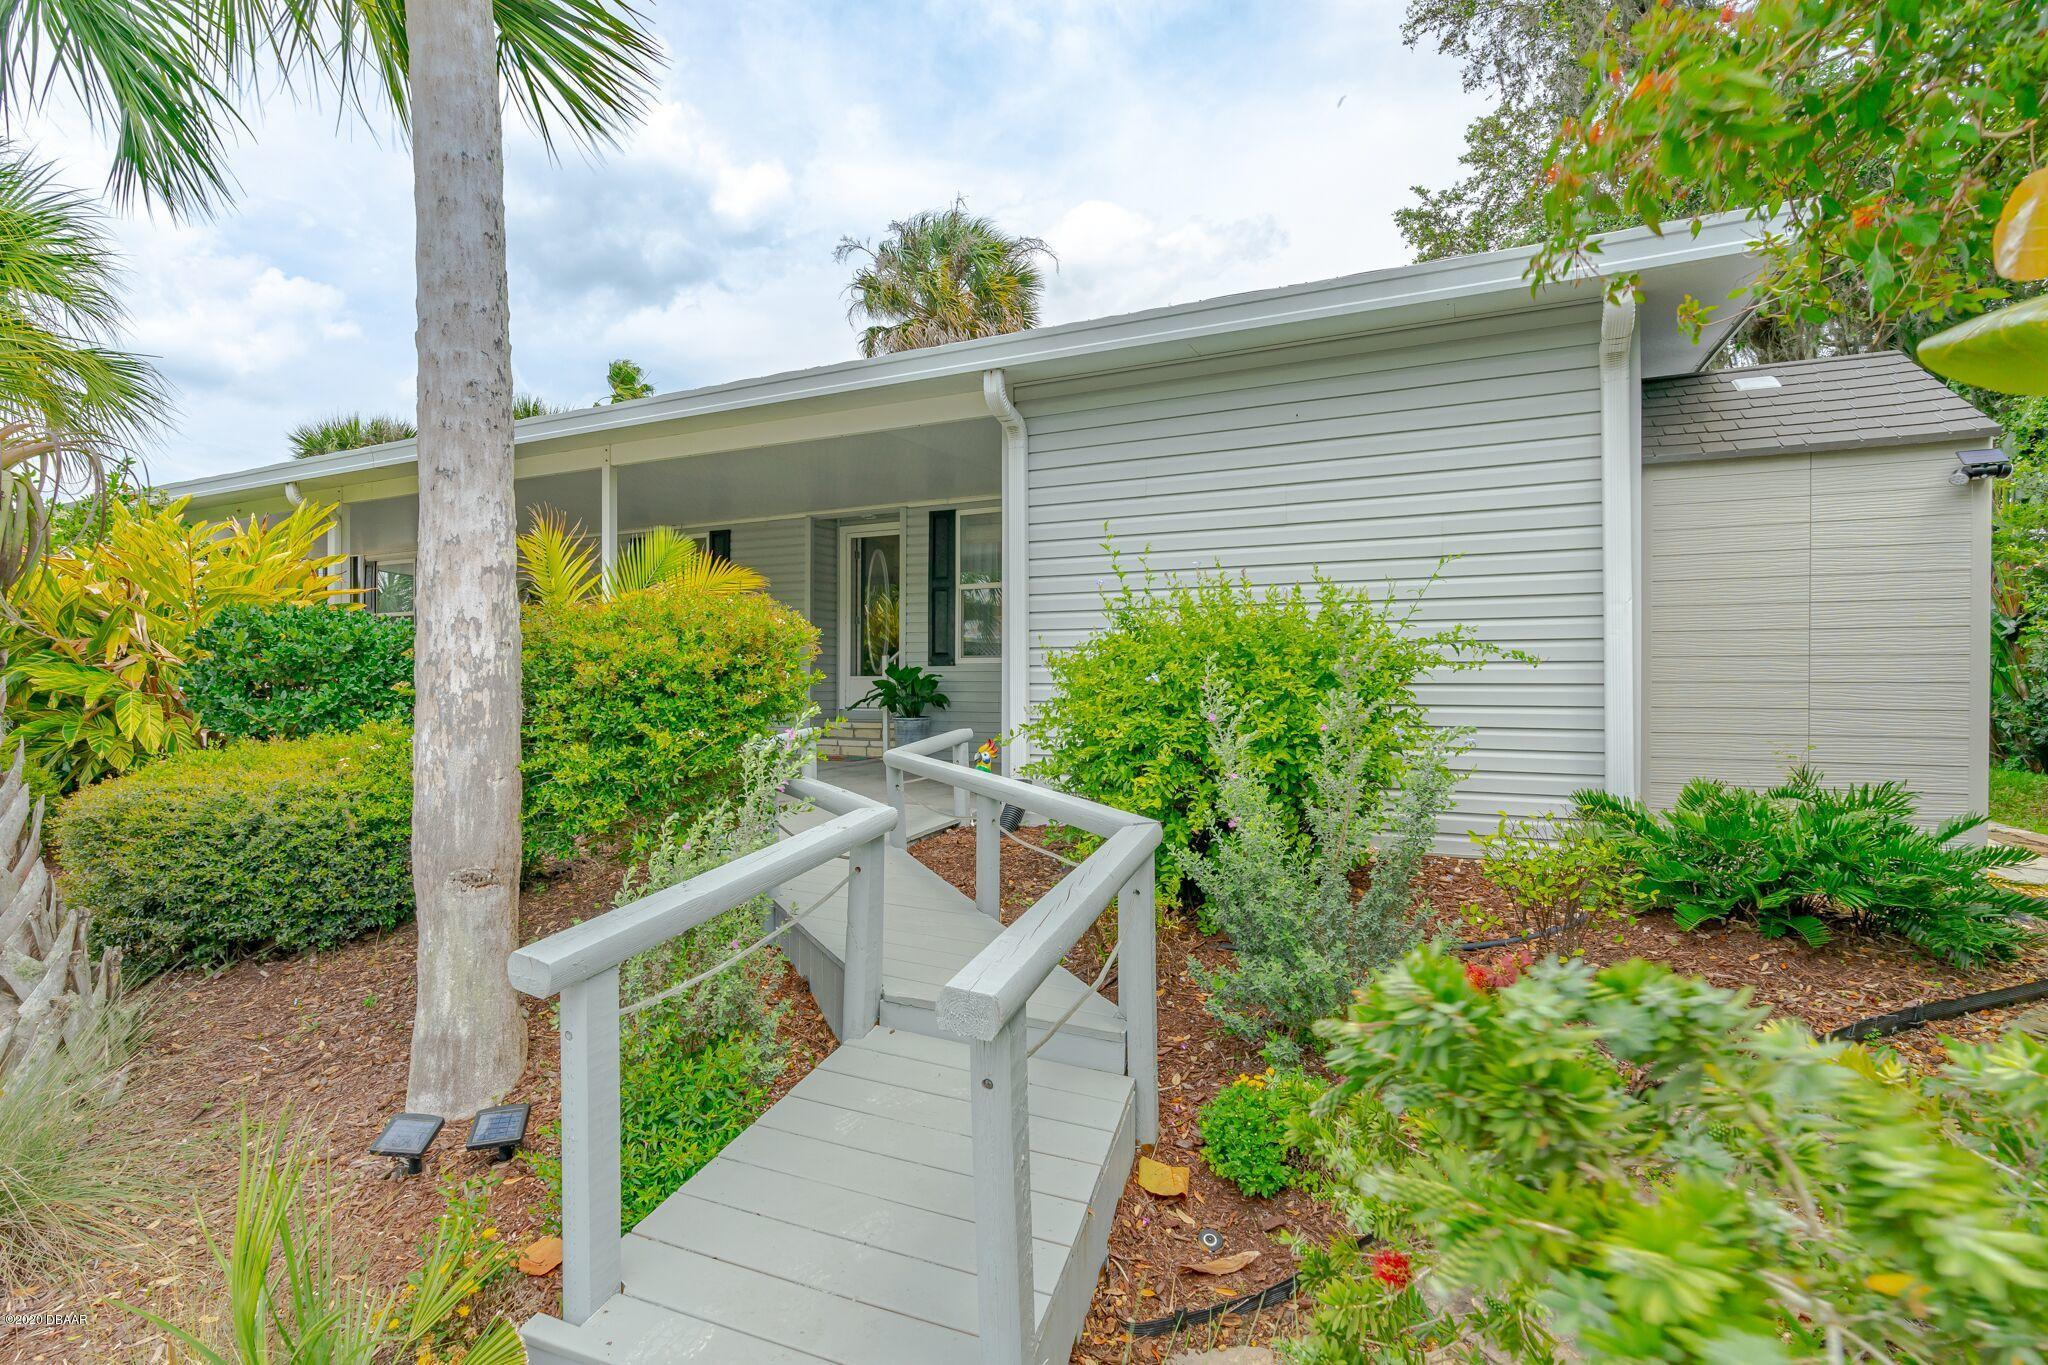 Photo of 775 Navigators Way, Edgewater, FL 32141